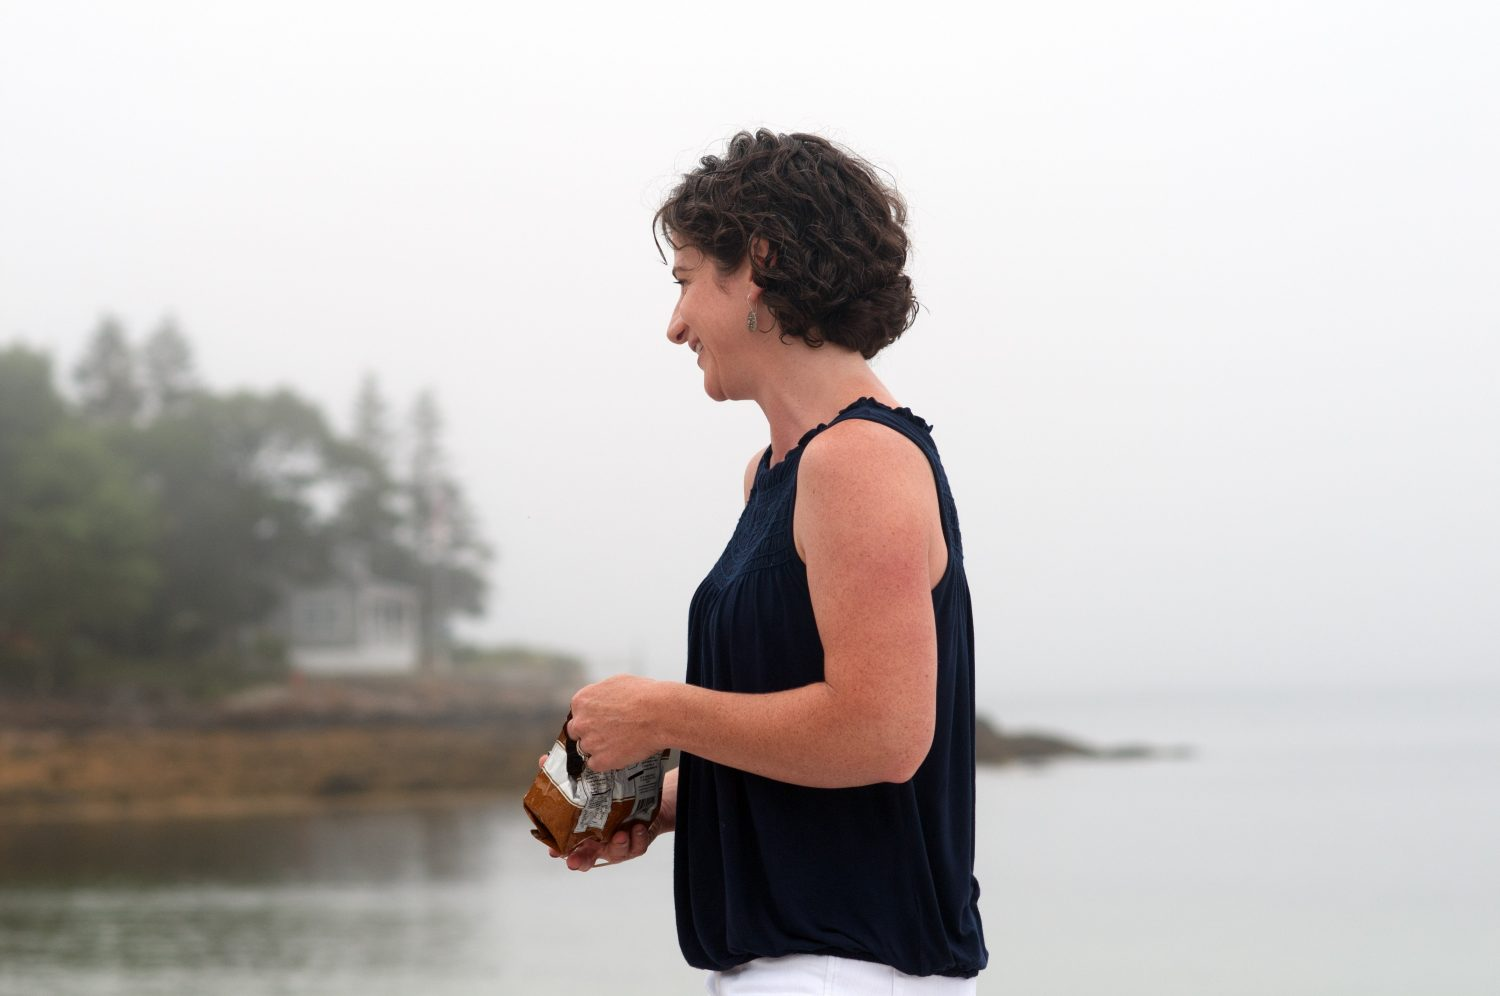 Profile_of_smiling_woman_in_Maine